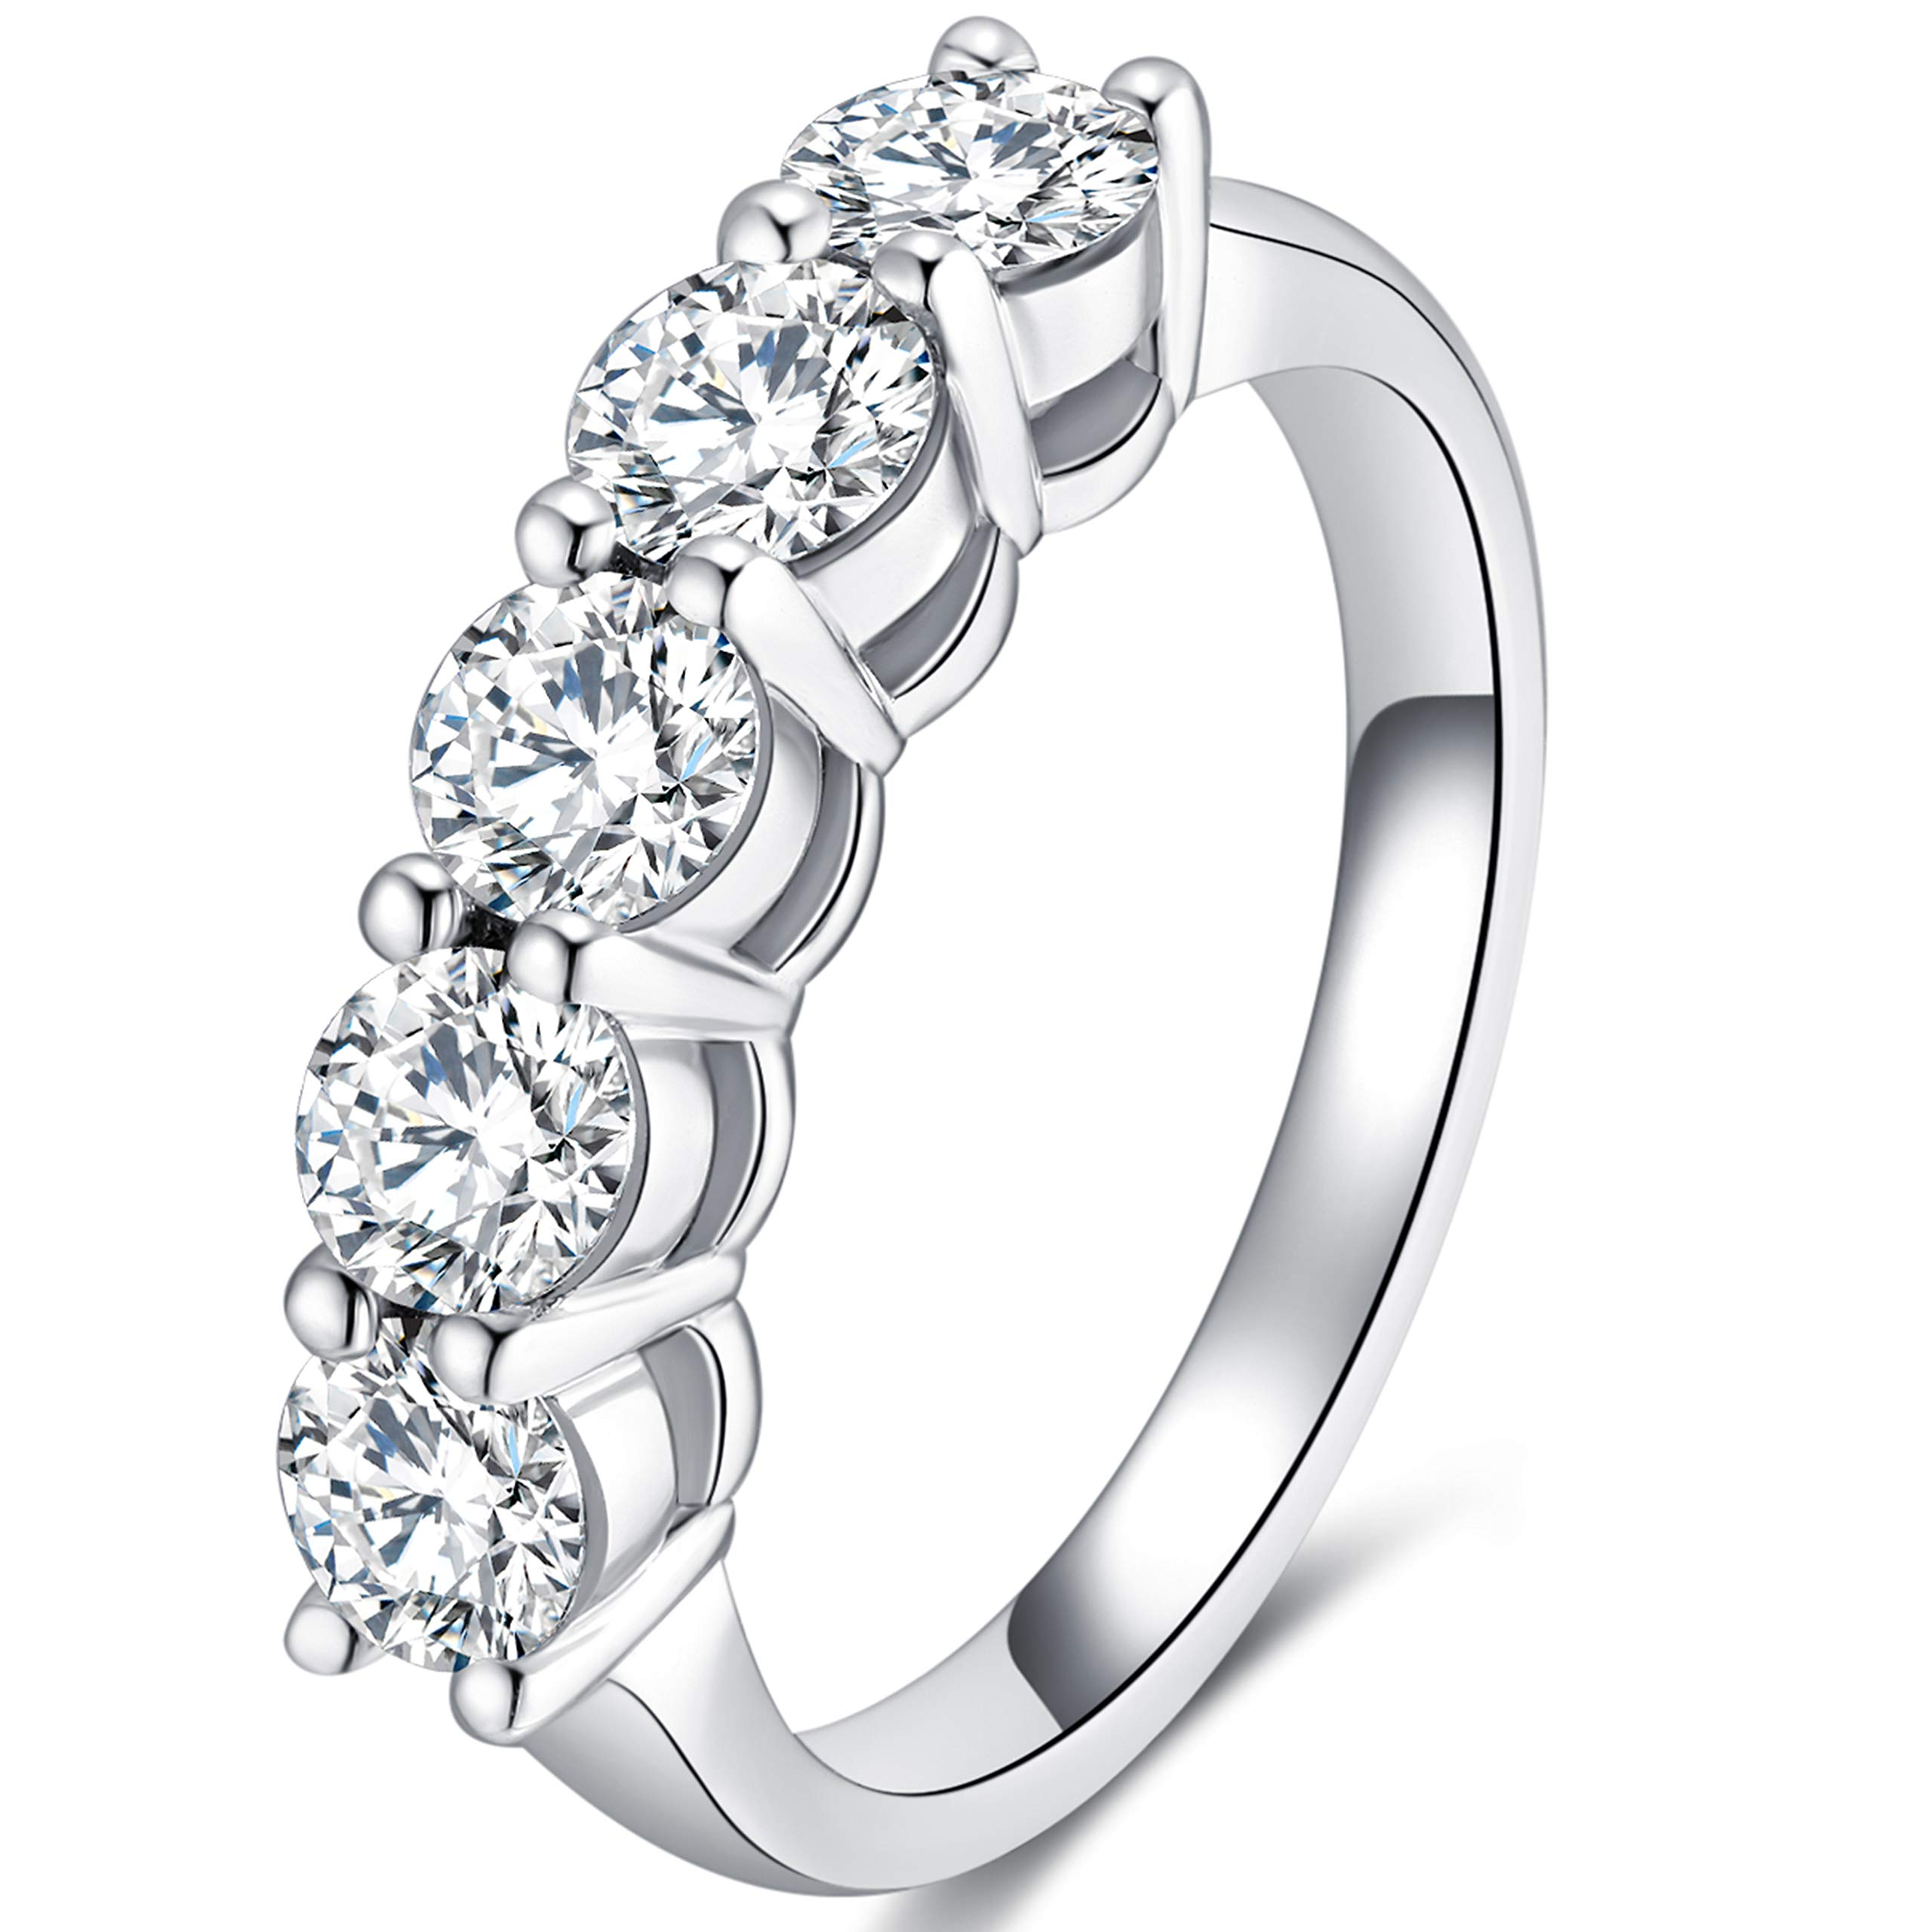 GEM DE LUXE 1.5ct 2.6mm Band Width F-G Color Moissanite Wedding Bands for Women Platinum Plated Silver